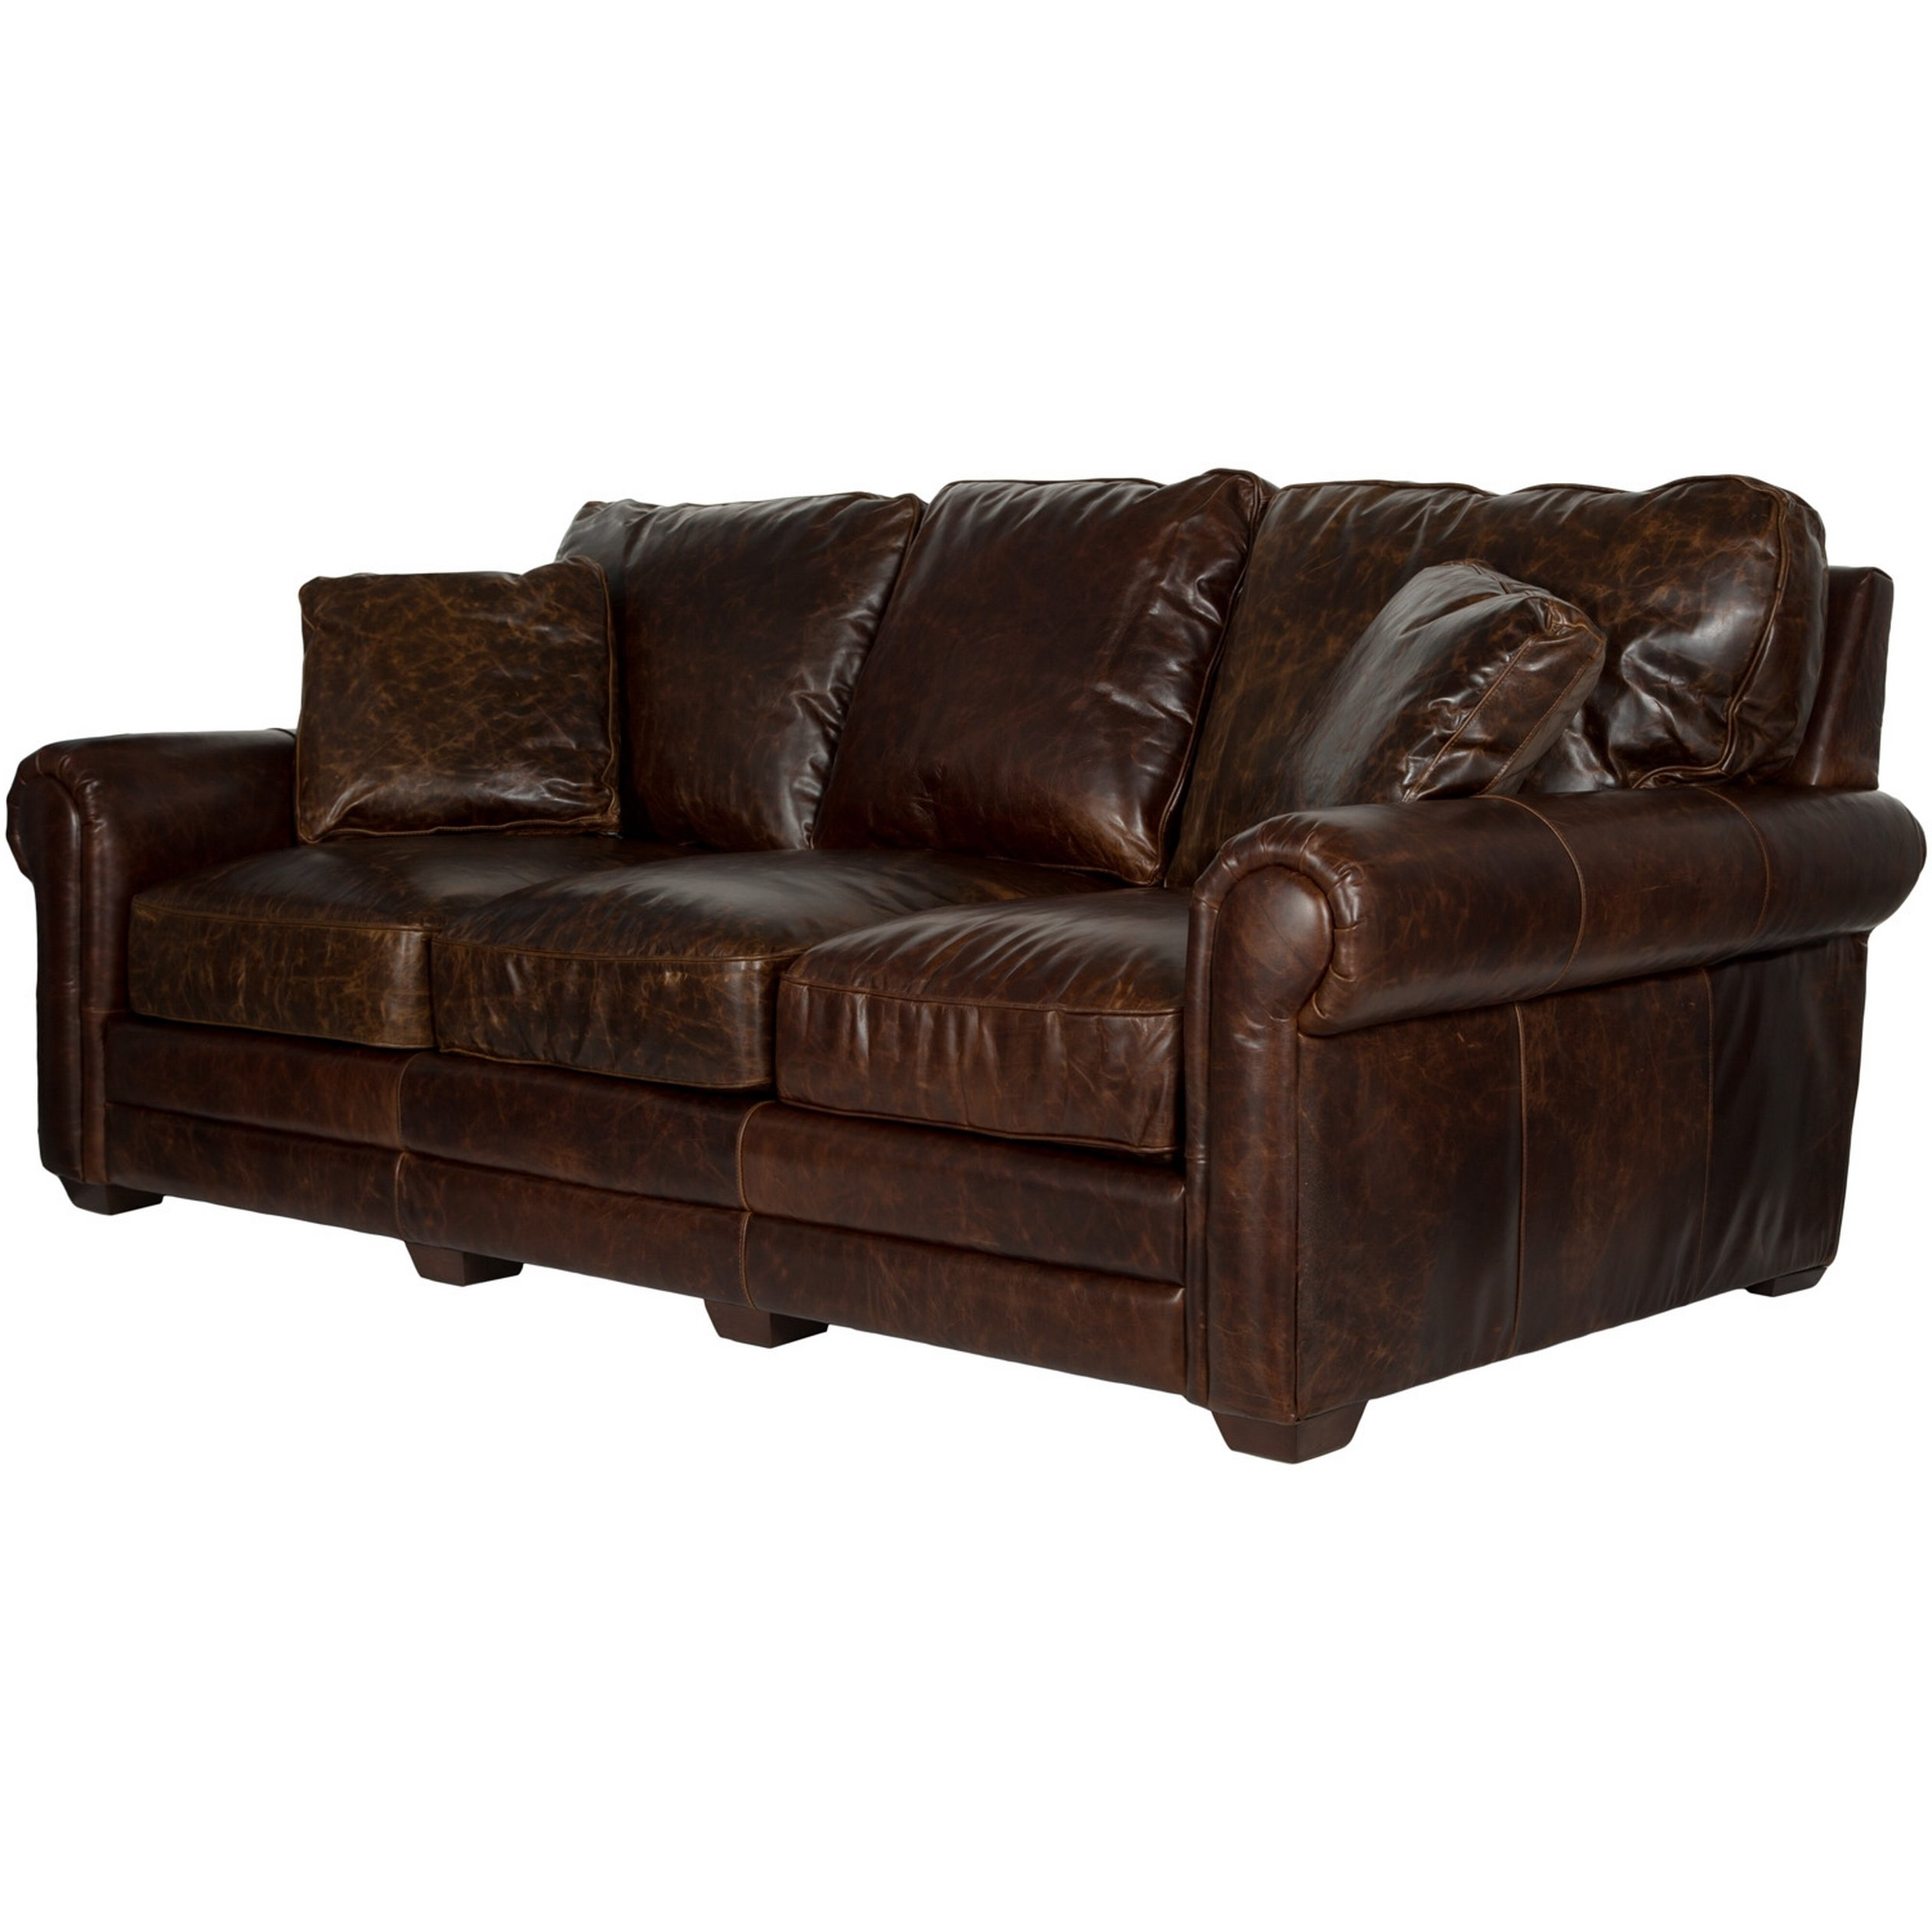 Well Liked Walter Leather Sofa Chairs Pertaining To Shop Safavieh Couture High Line Collection Walter Cocoa Leather Sofa (View 20 of 20)